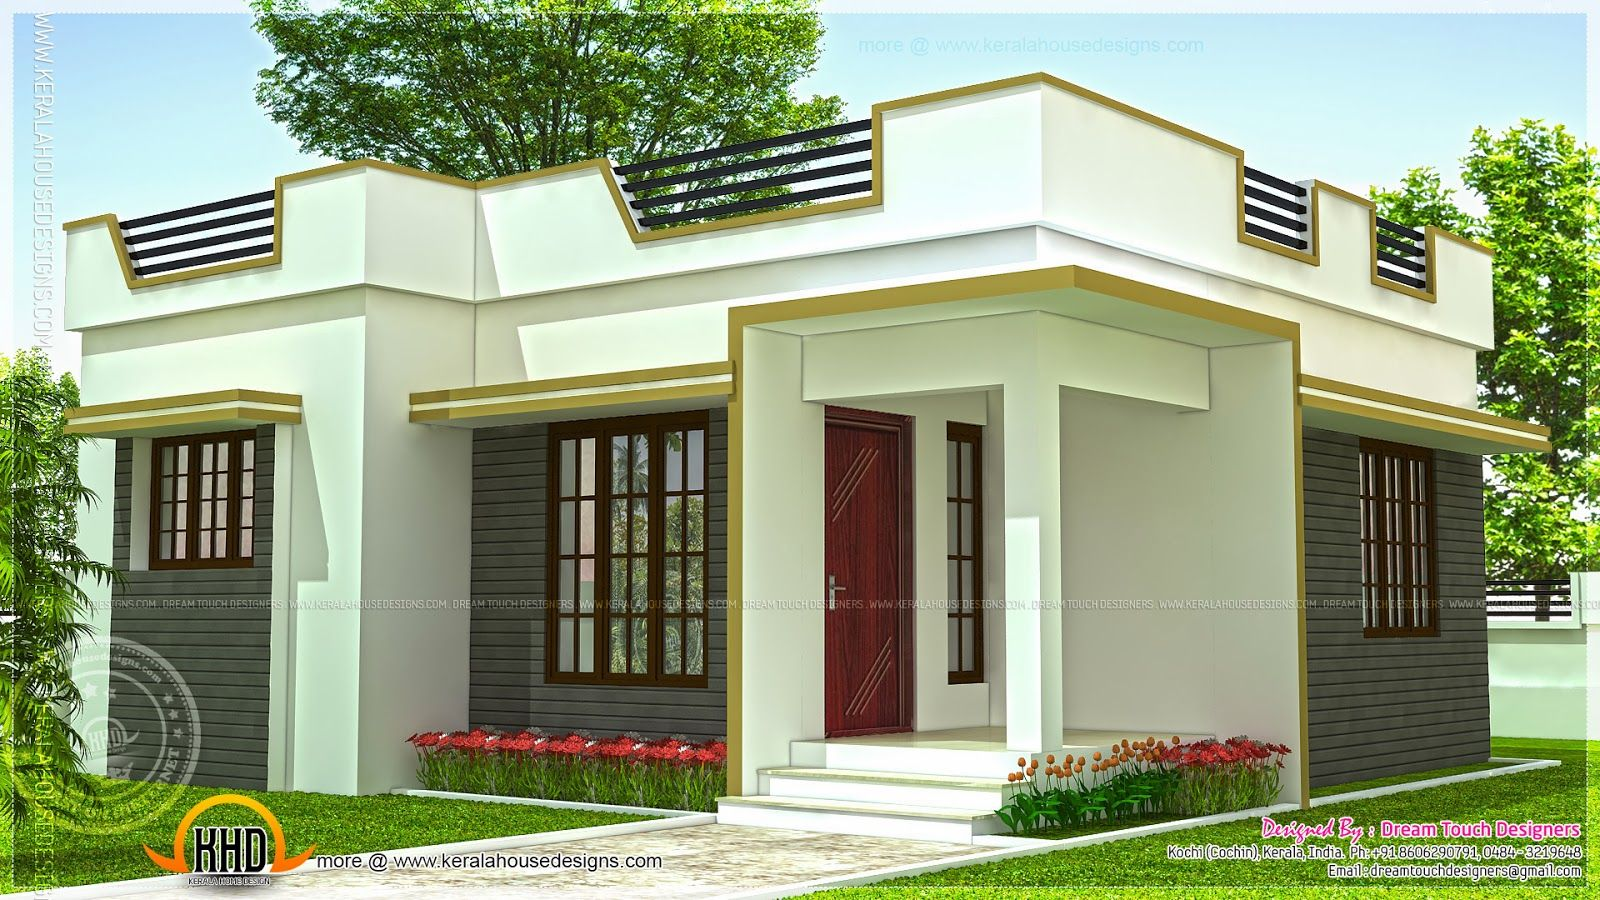 Lately 21 small house design kerala small house Small house indian style